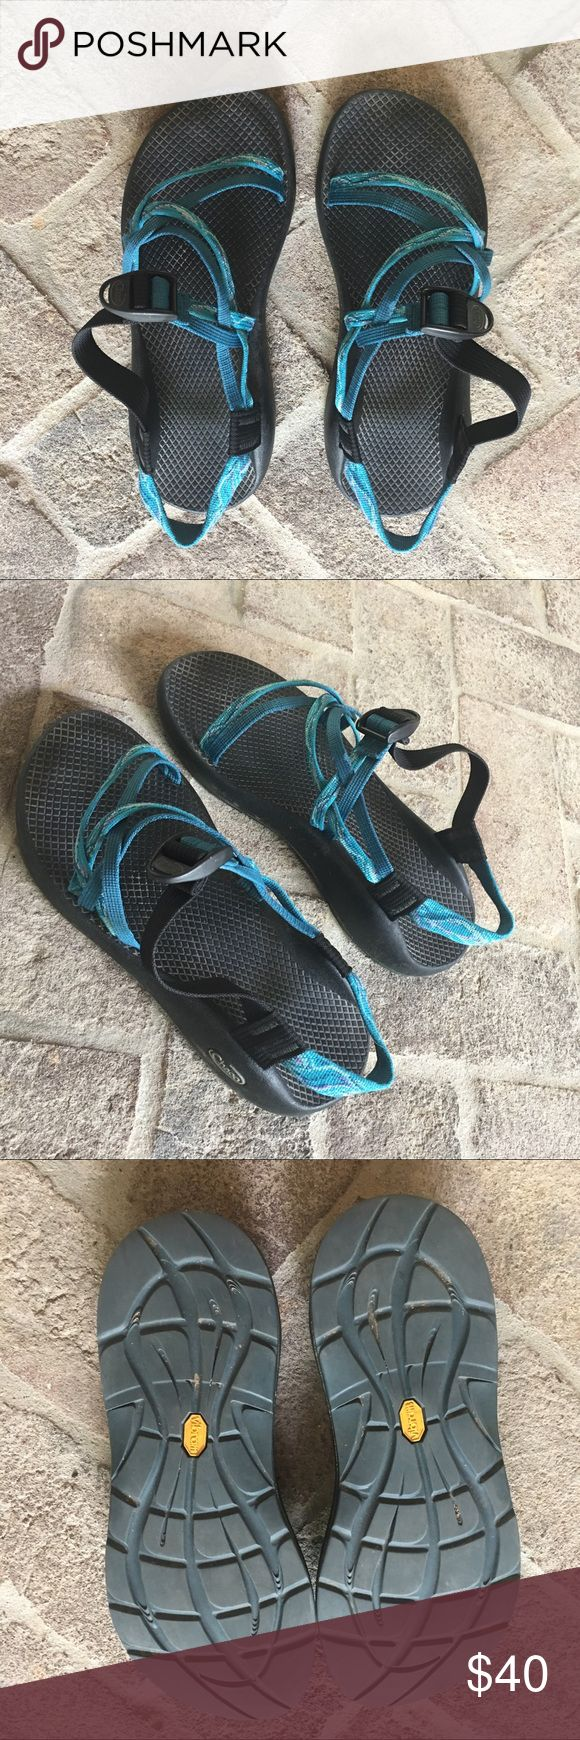 Chacos size 9 Super comfy. Double strap with no toe strap. Used but good condition. Chaco Shoes Sandals